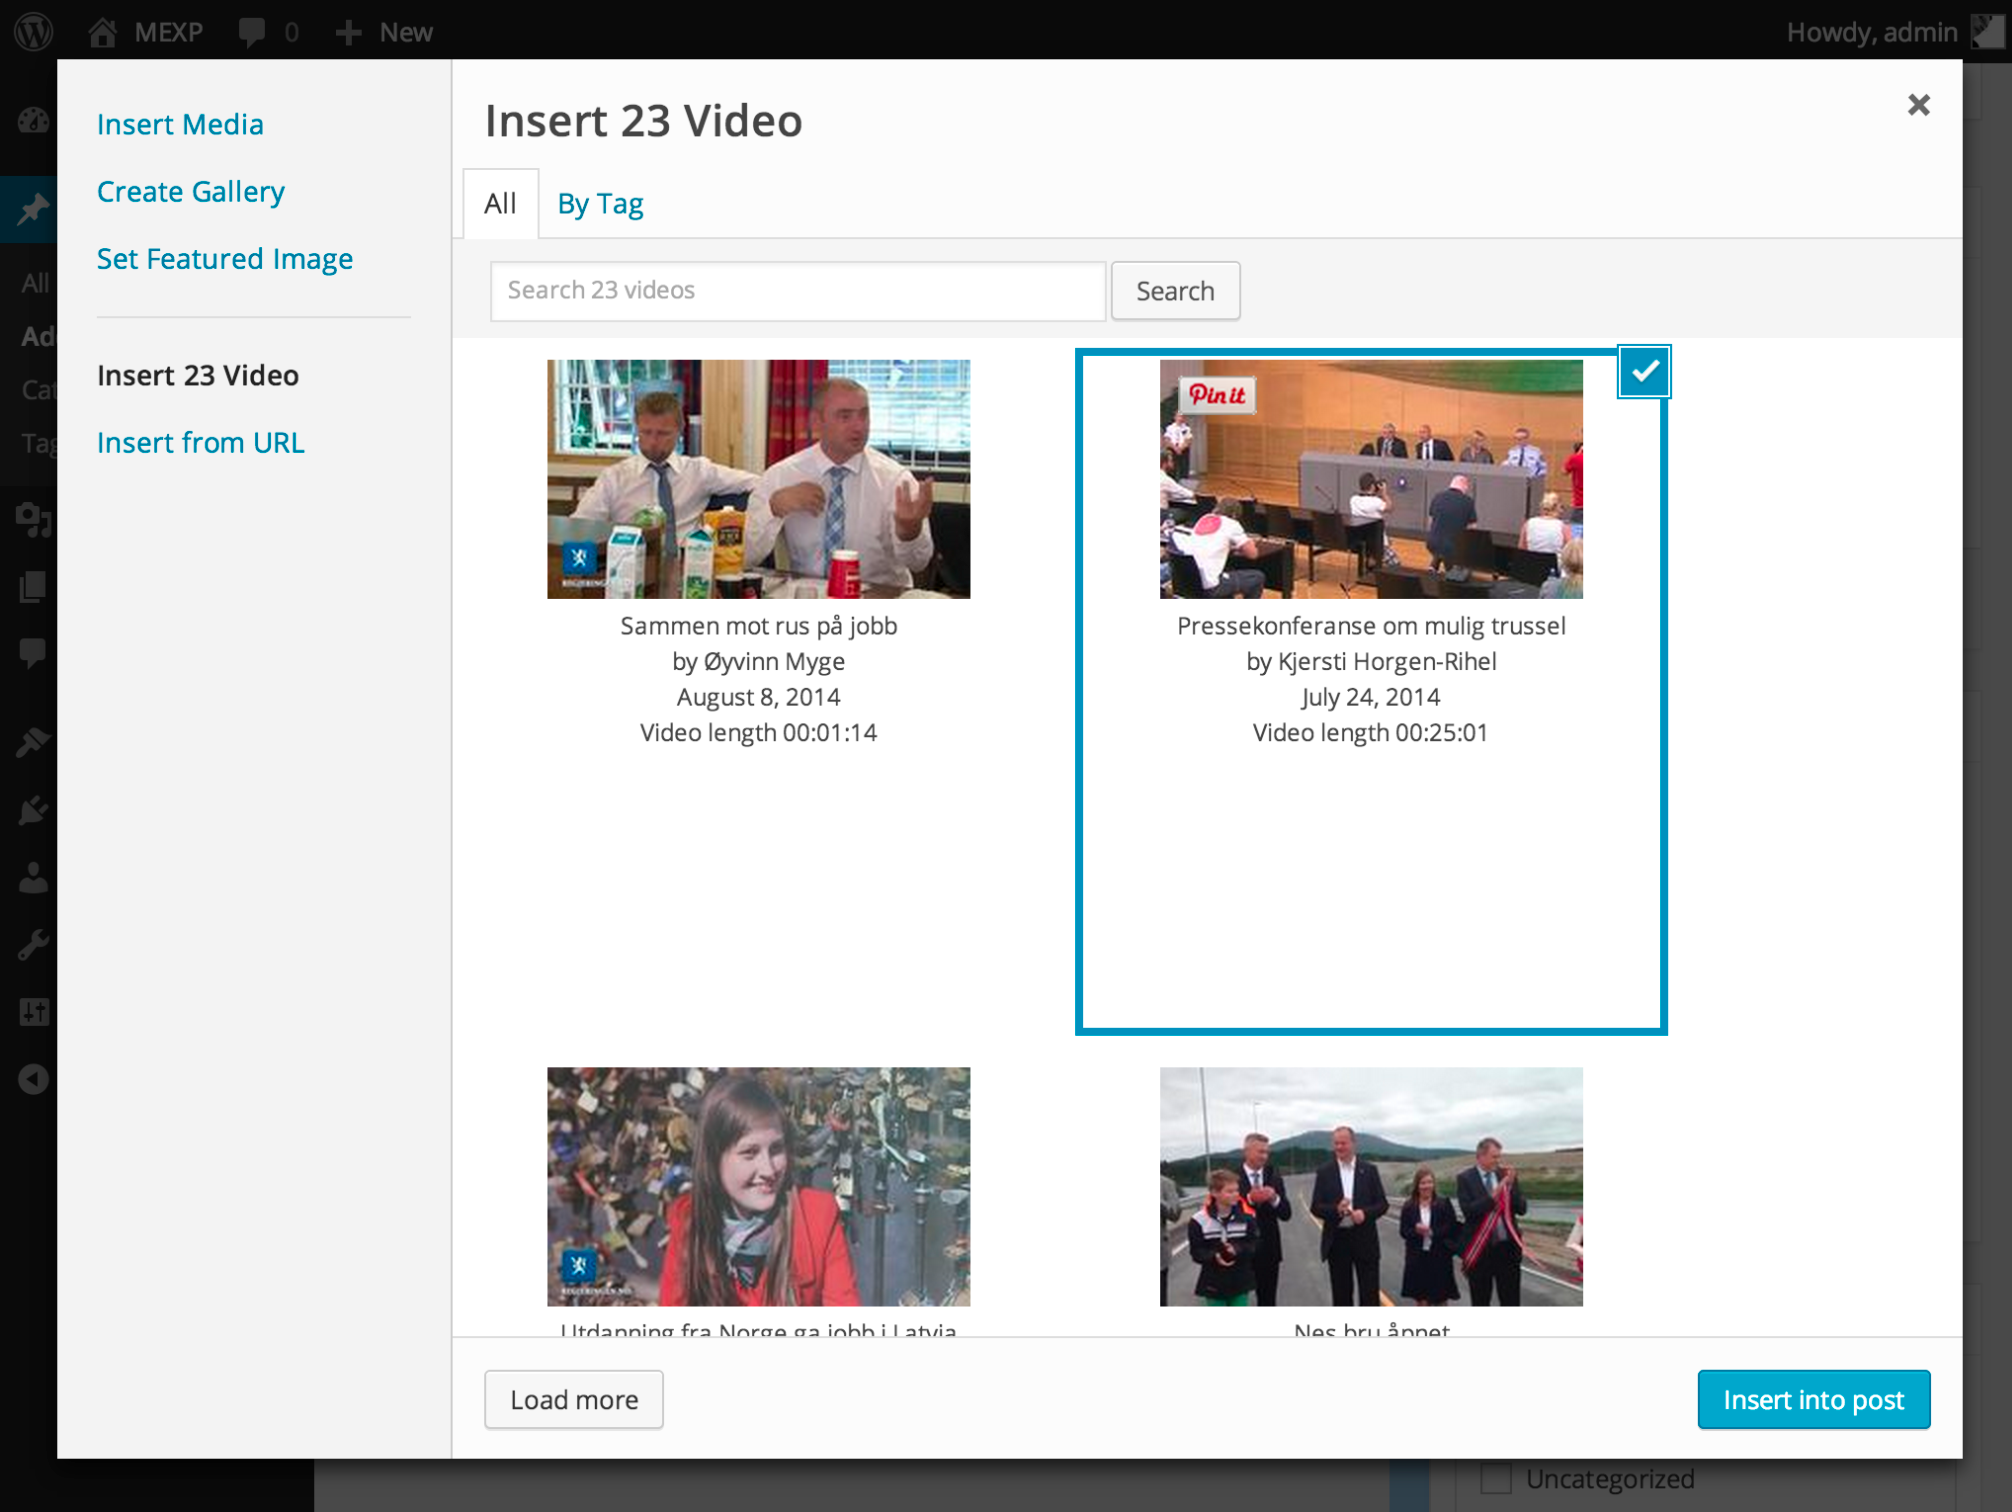 Search videos from 23 Video within media explorer